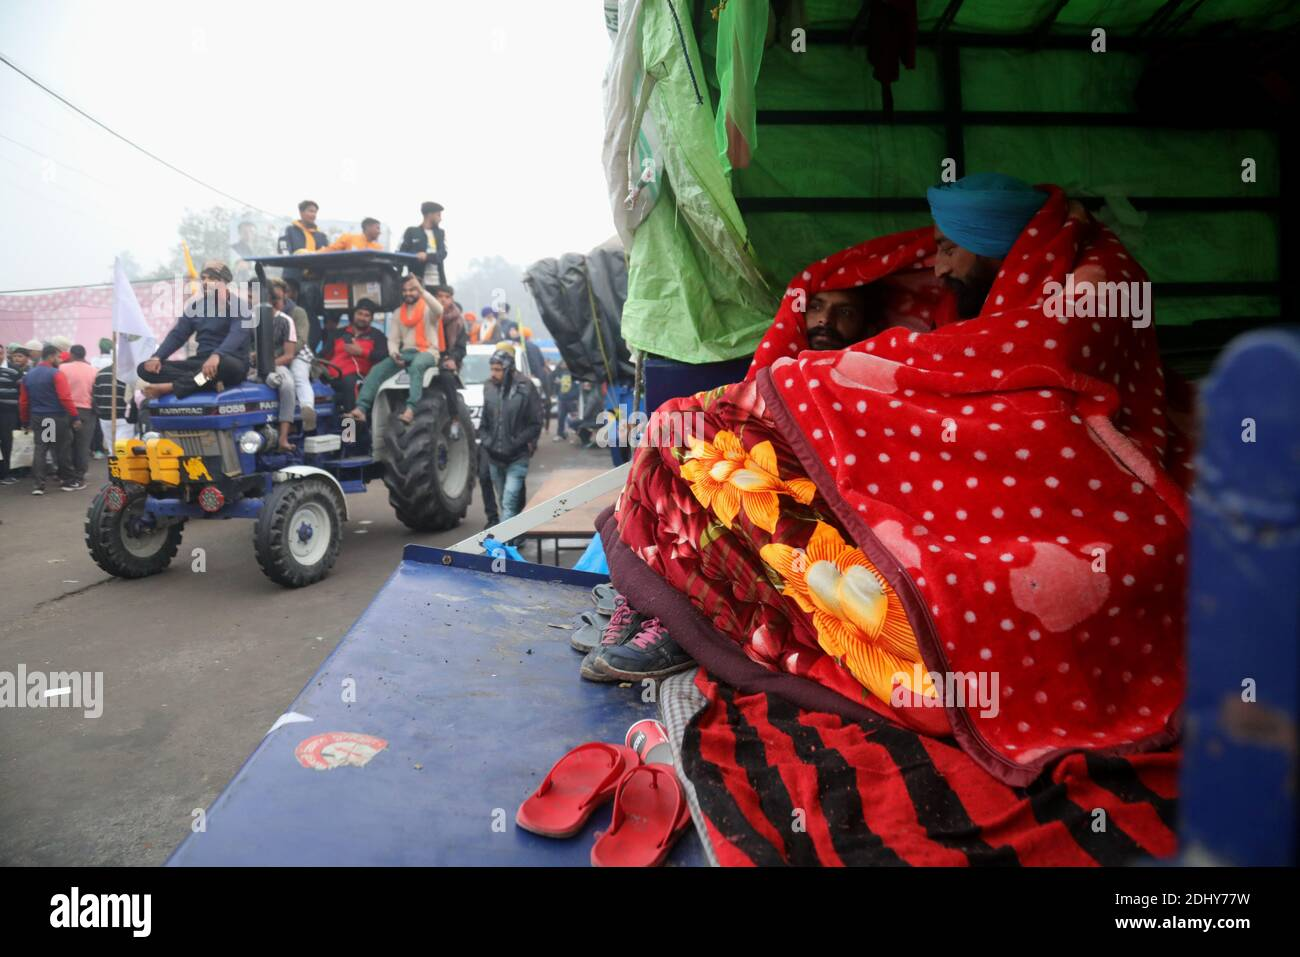 Protesters use a blanket to warm themselves during the demonstration.Thousands of farmers from Punjab, Haryana and Uttar Pradesh blocked Singhu border (Delhi-Haryana Highway), Ghazipur border (Delhi-Meerut Highway), Tikri border and Gurugram Border agitating for the 17 days. Against the Centre's new farm reform laws.  Indian Union Minister of Agriculture and Farmers Welfare, Narendra Singh Tomar appeals to farmers to end their protest and work with the government. Stock Photo